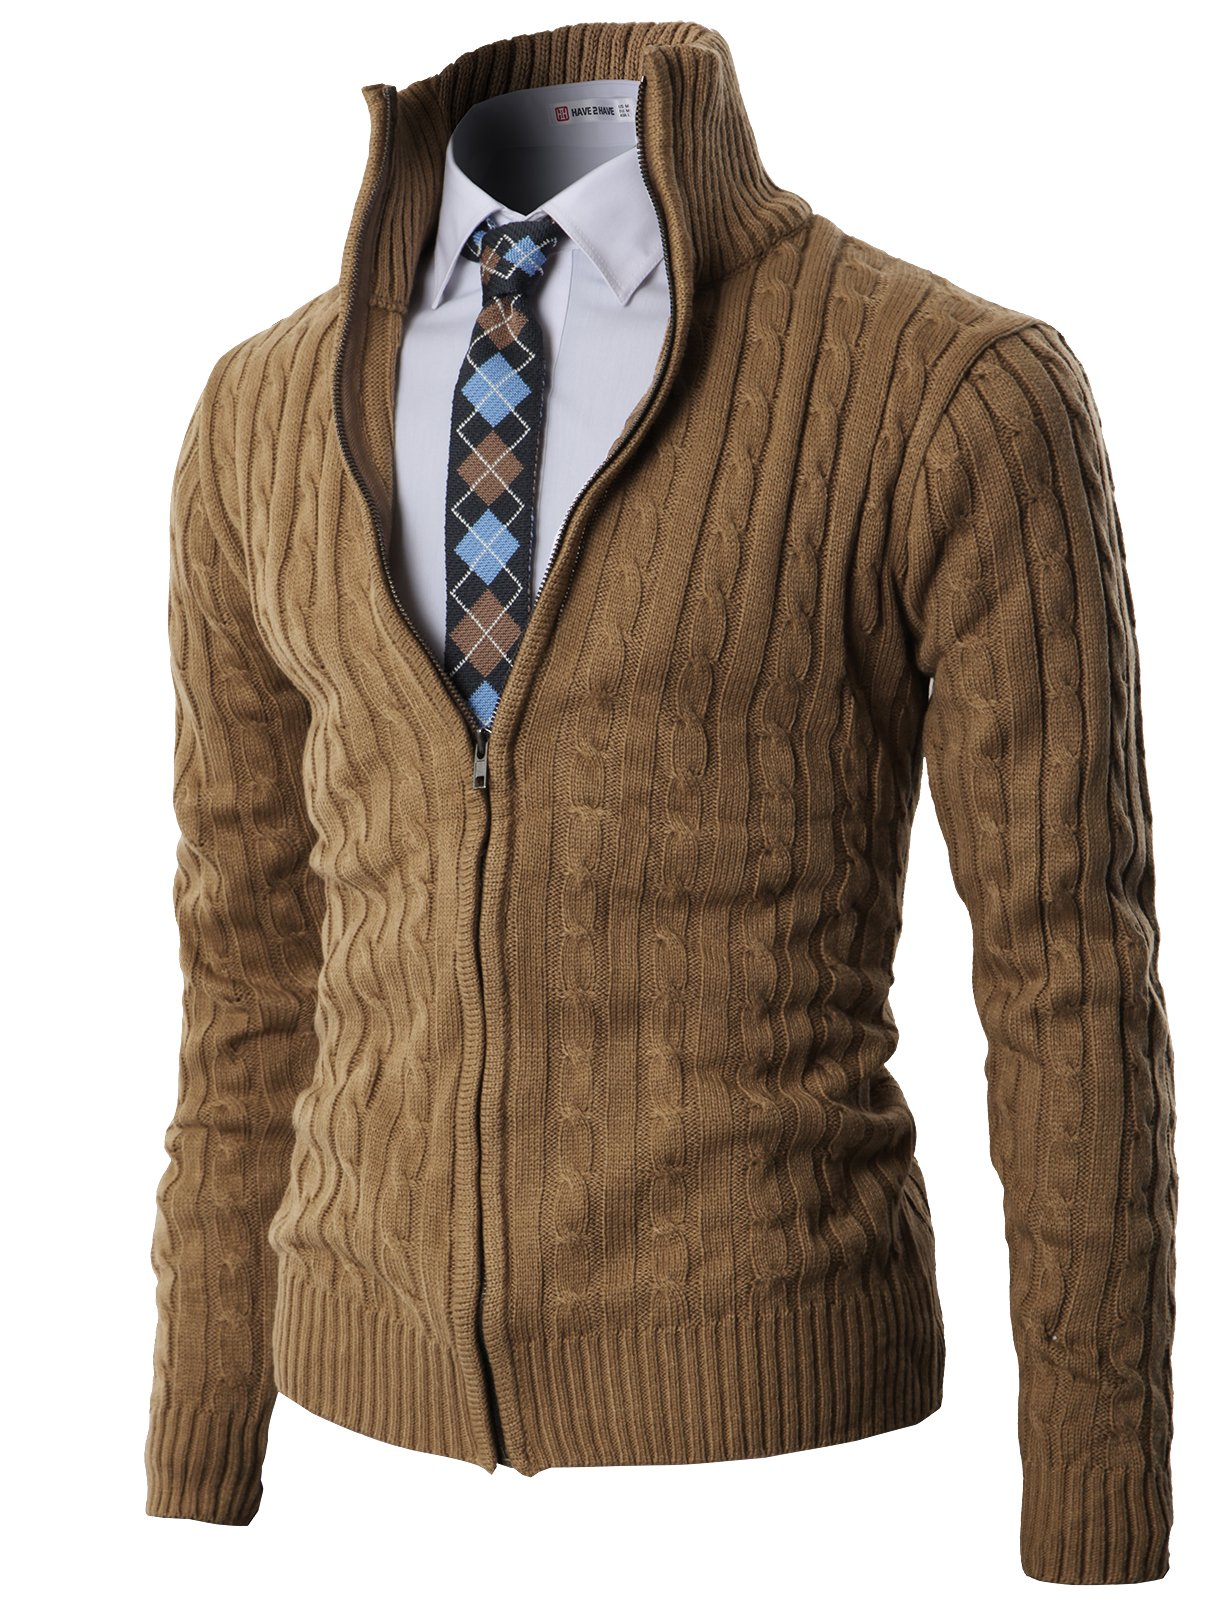 H2H Mens Casual Knitted Cardigan Zip-up with Twisted Pattern - US M (Asia L) - Kmocal017-beige